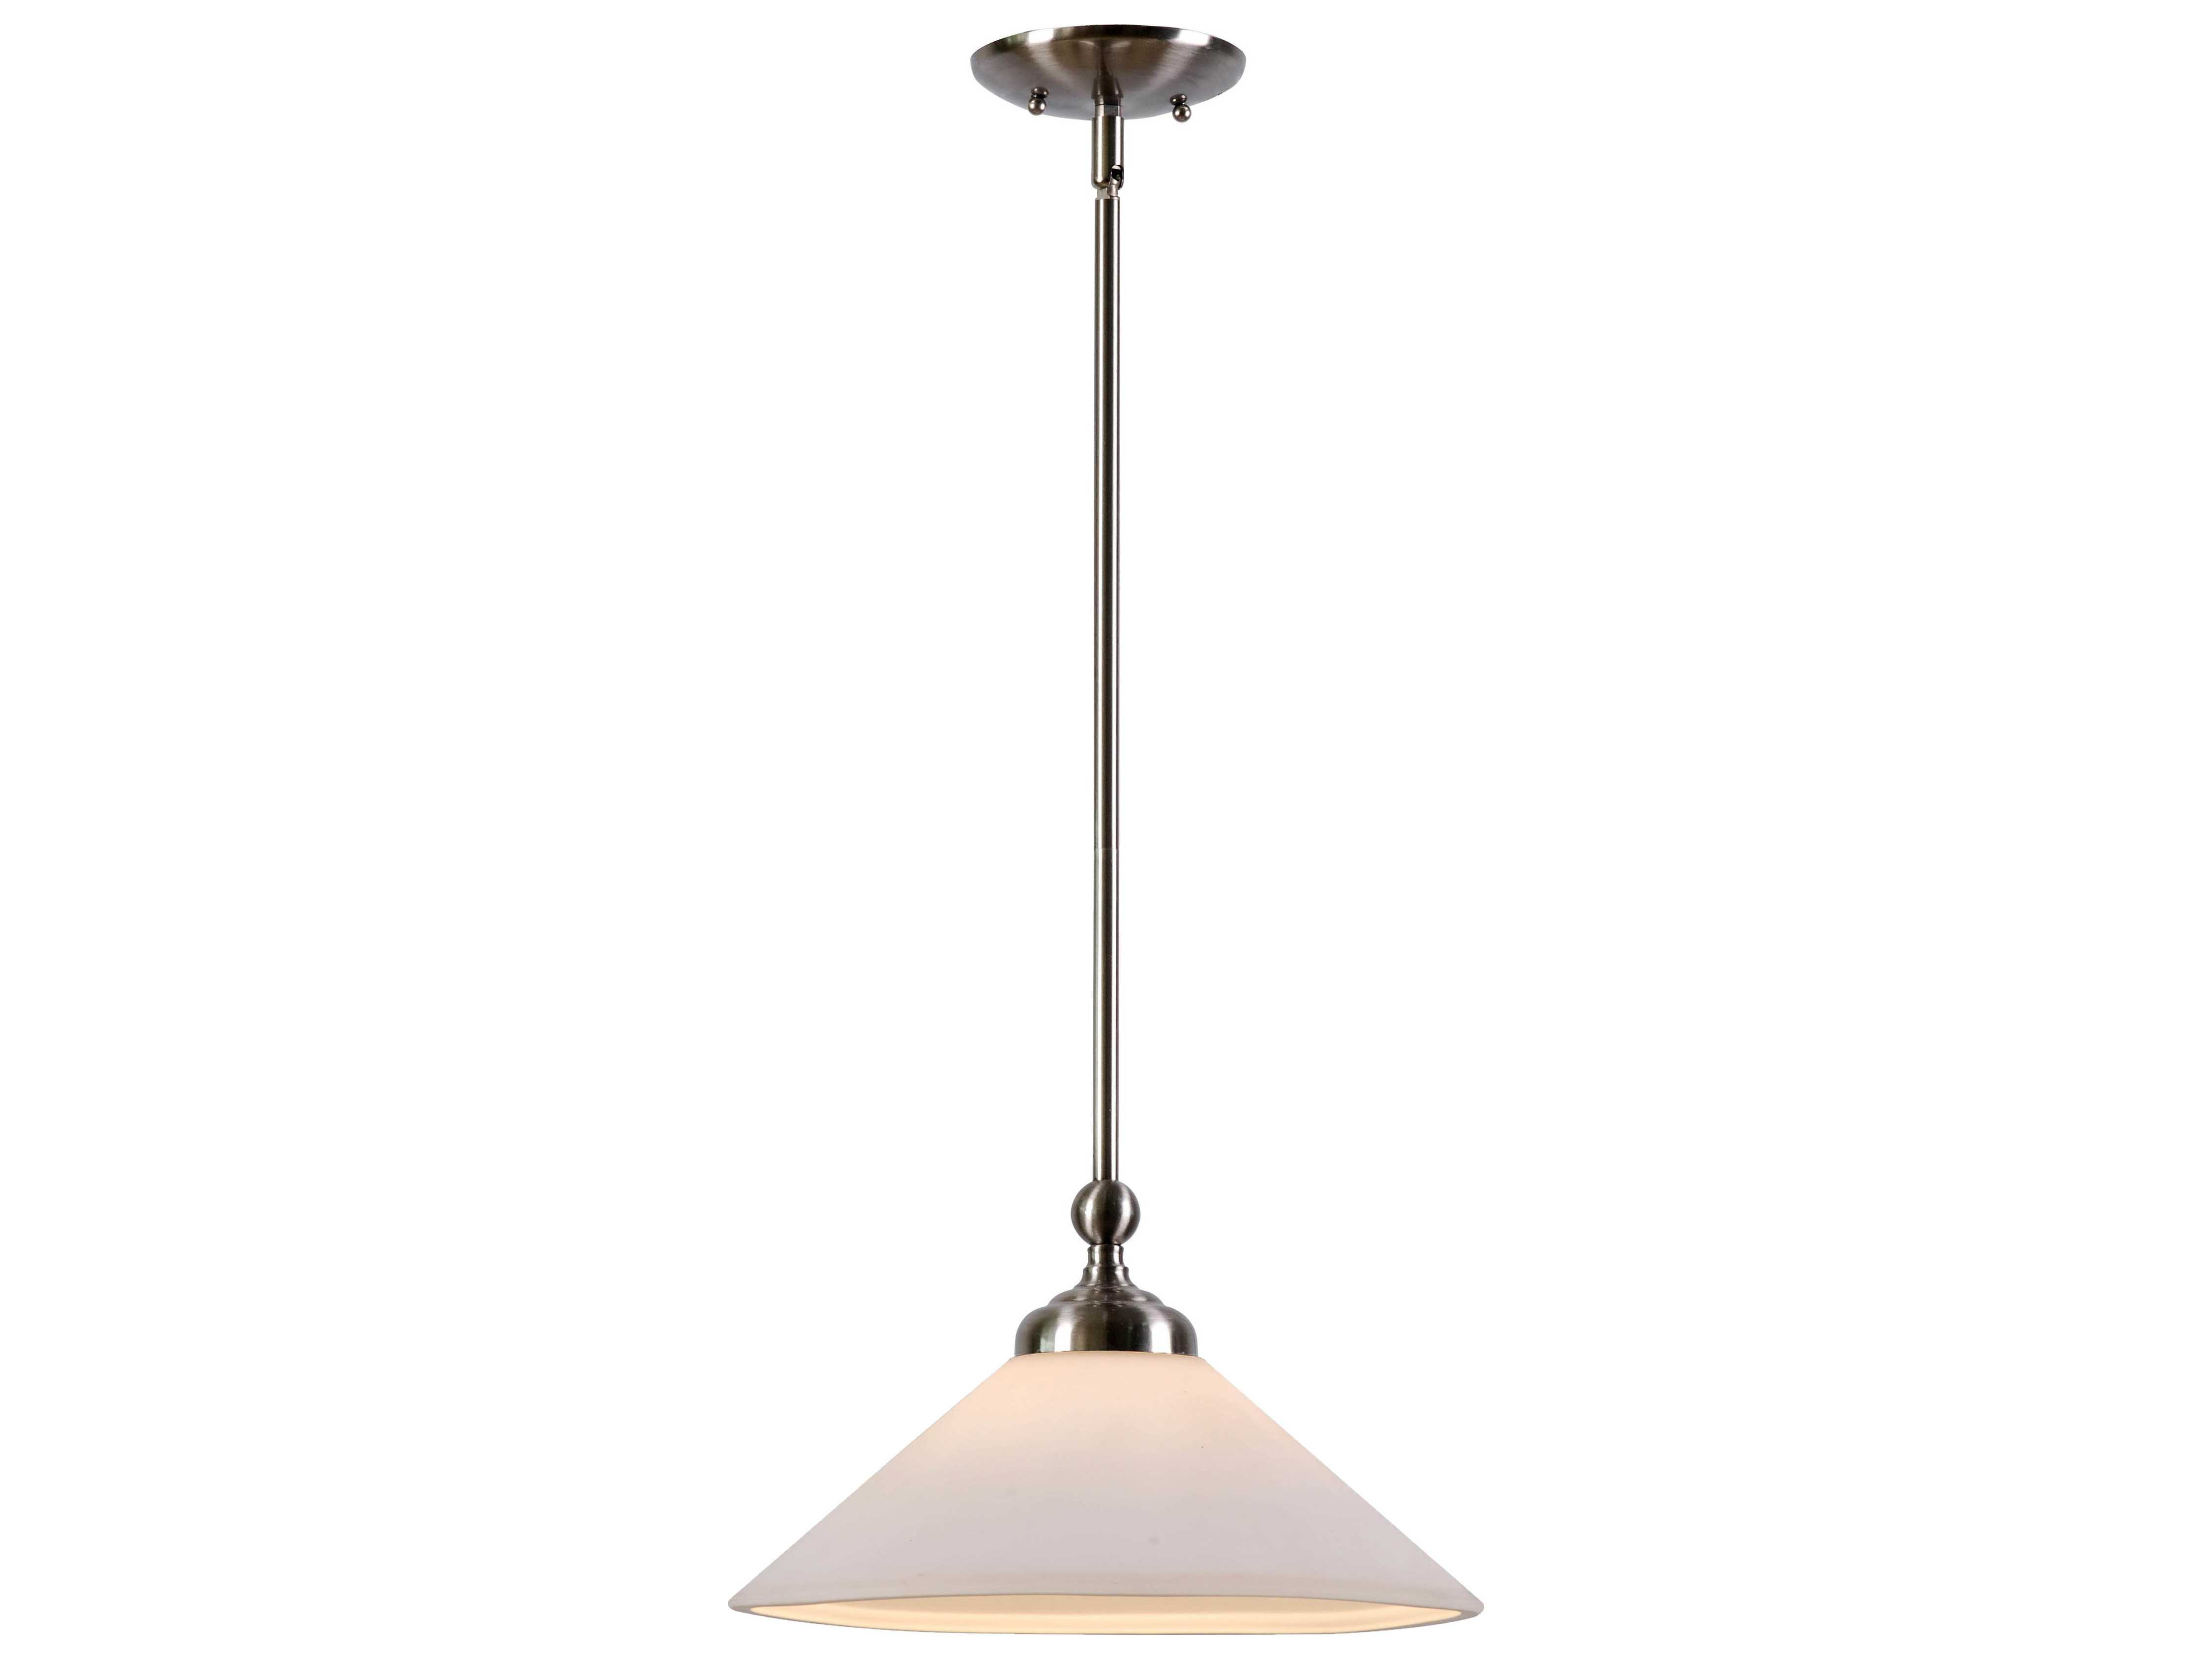 Kenroy home conical brushed steel 13 wide pendant ceiling light kenroy home conical brushed steel 13 wide pendant ceiling light aloadofball Images